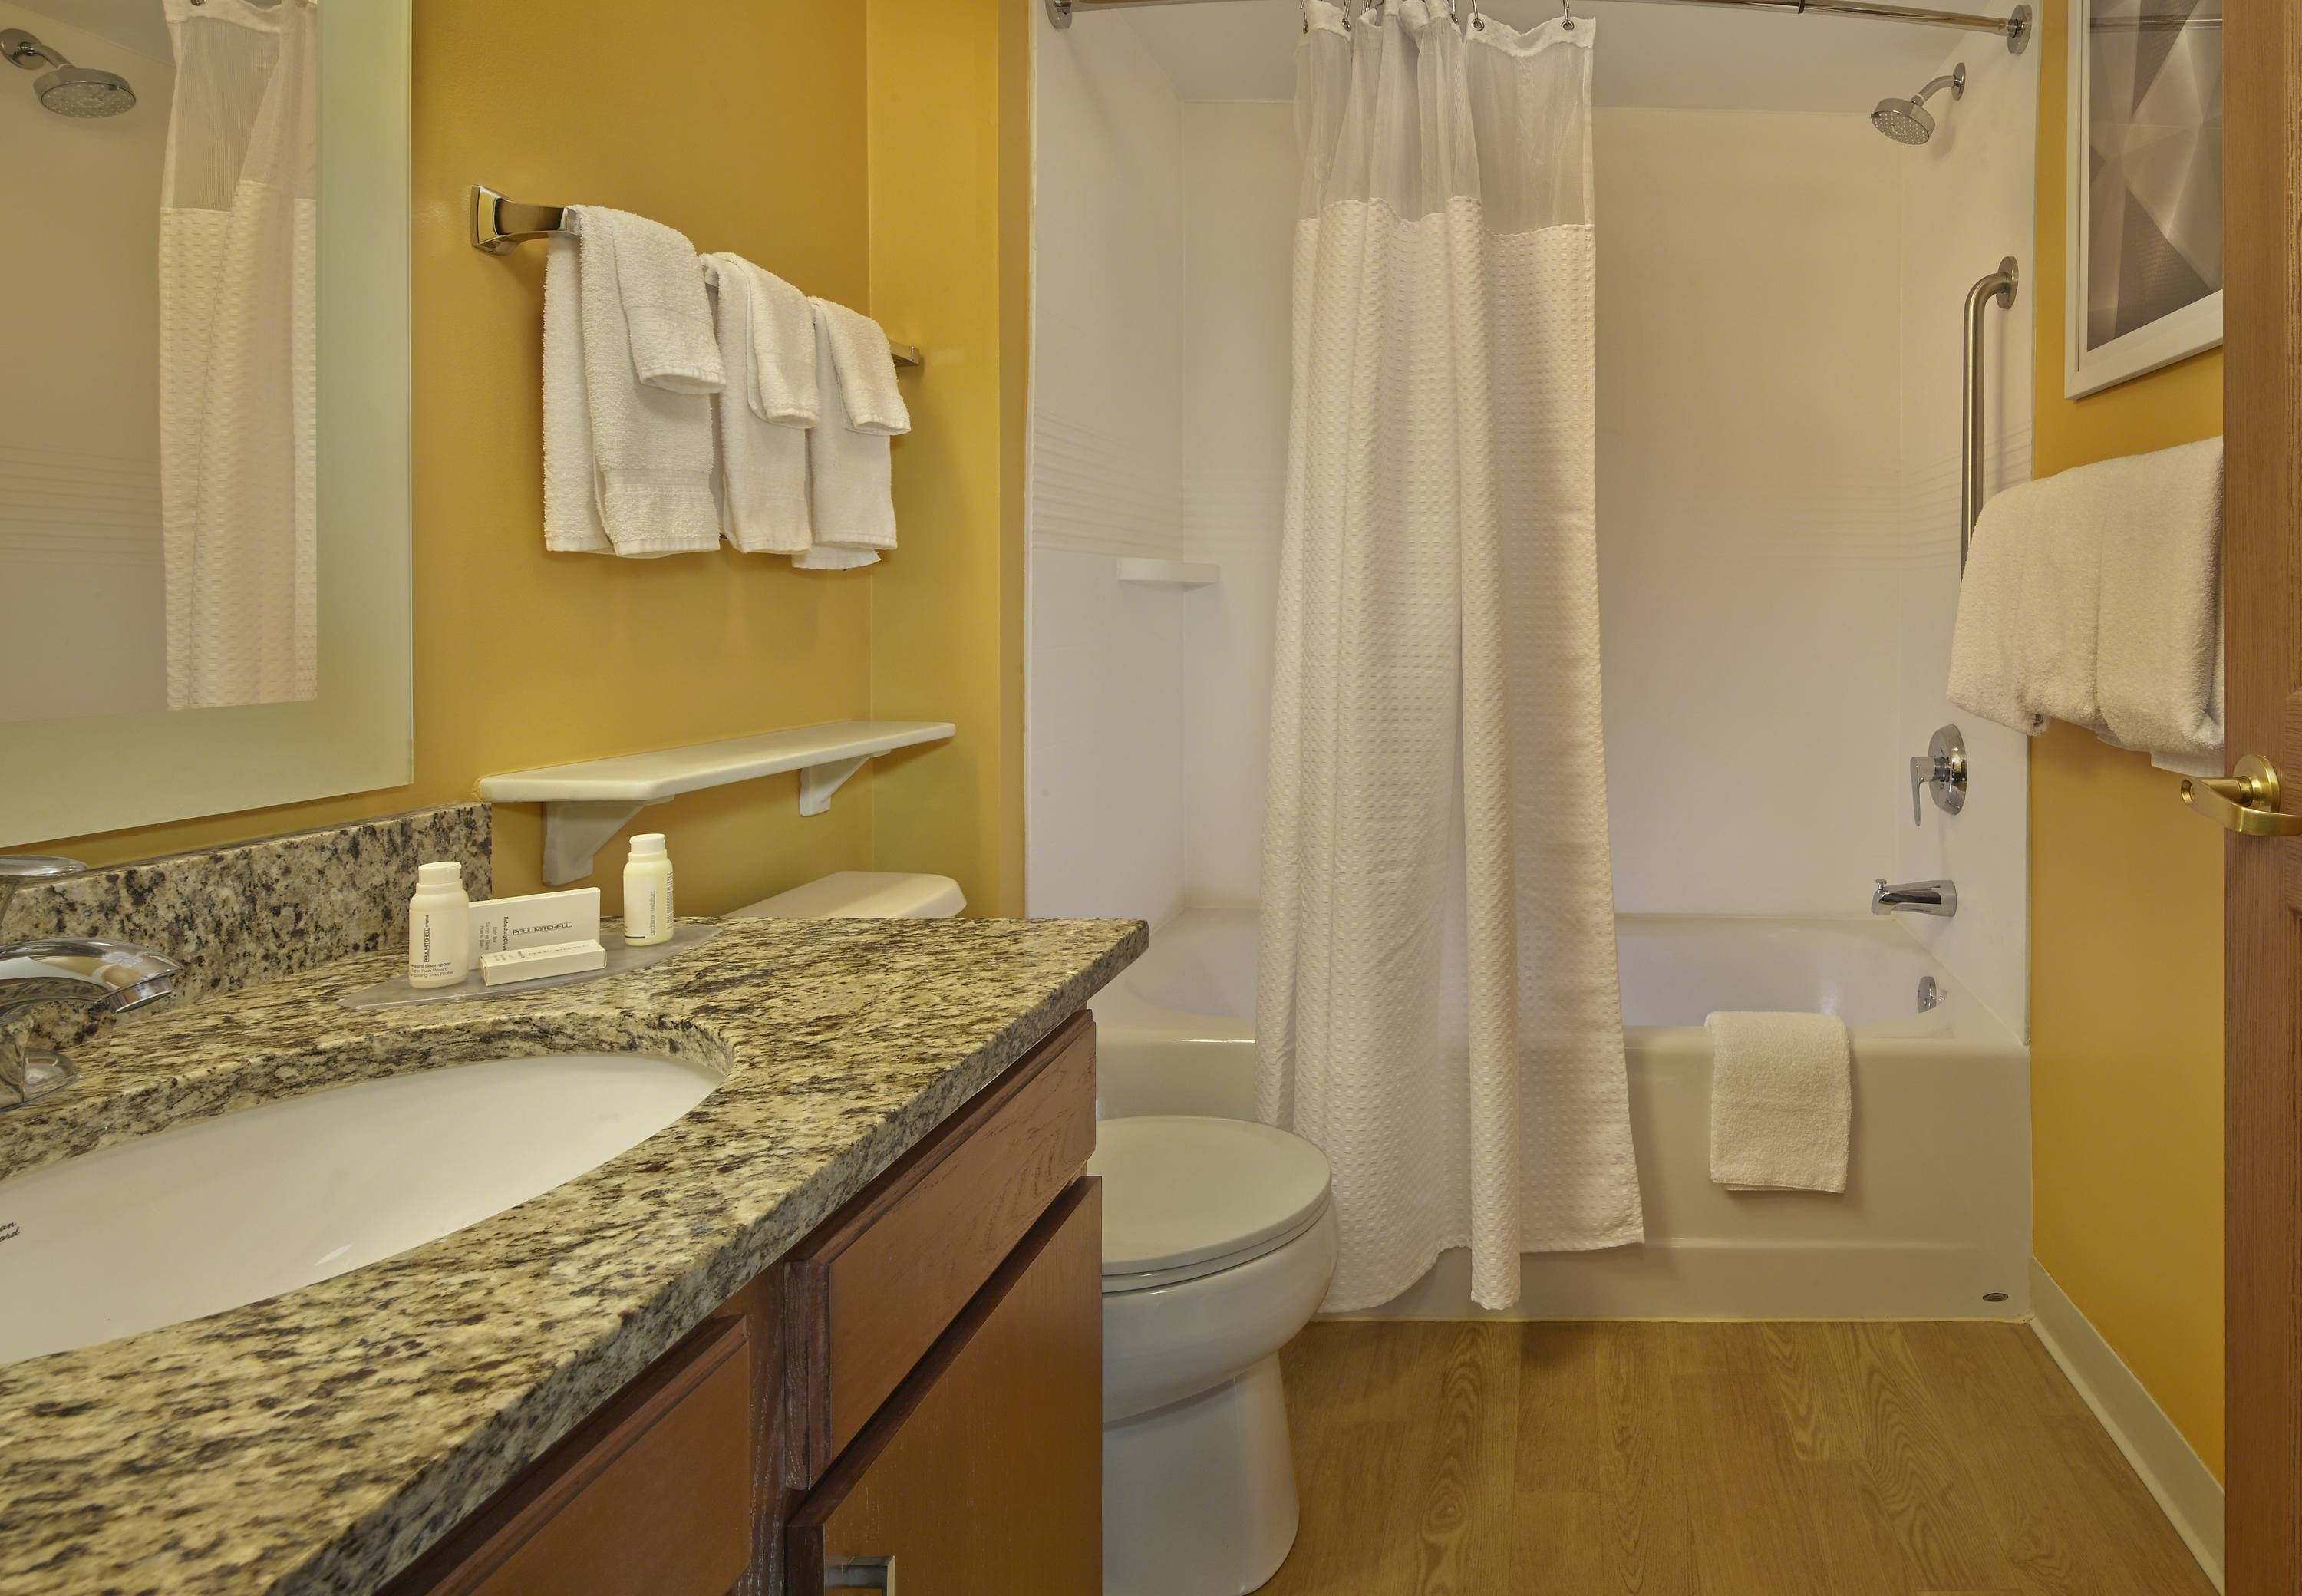 TownePlace Suites by Marriott Boston Tewksbury/Andover image 15